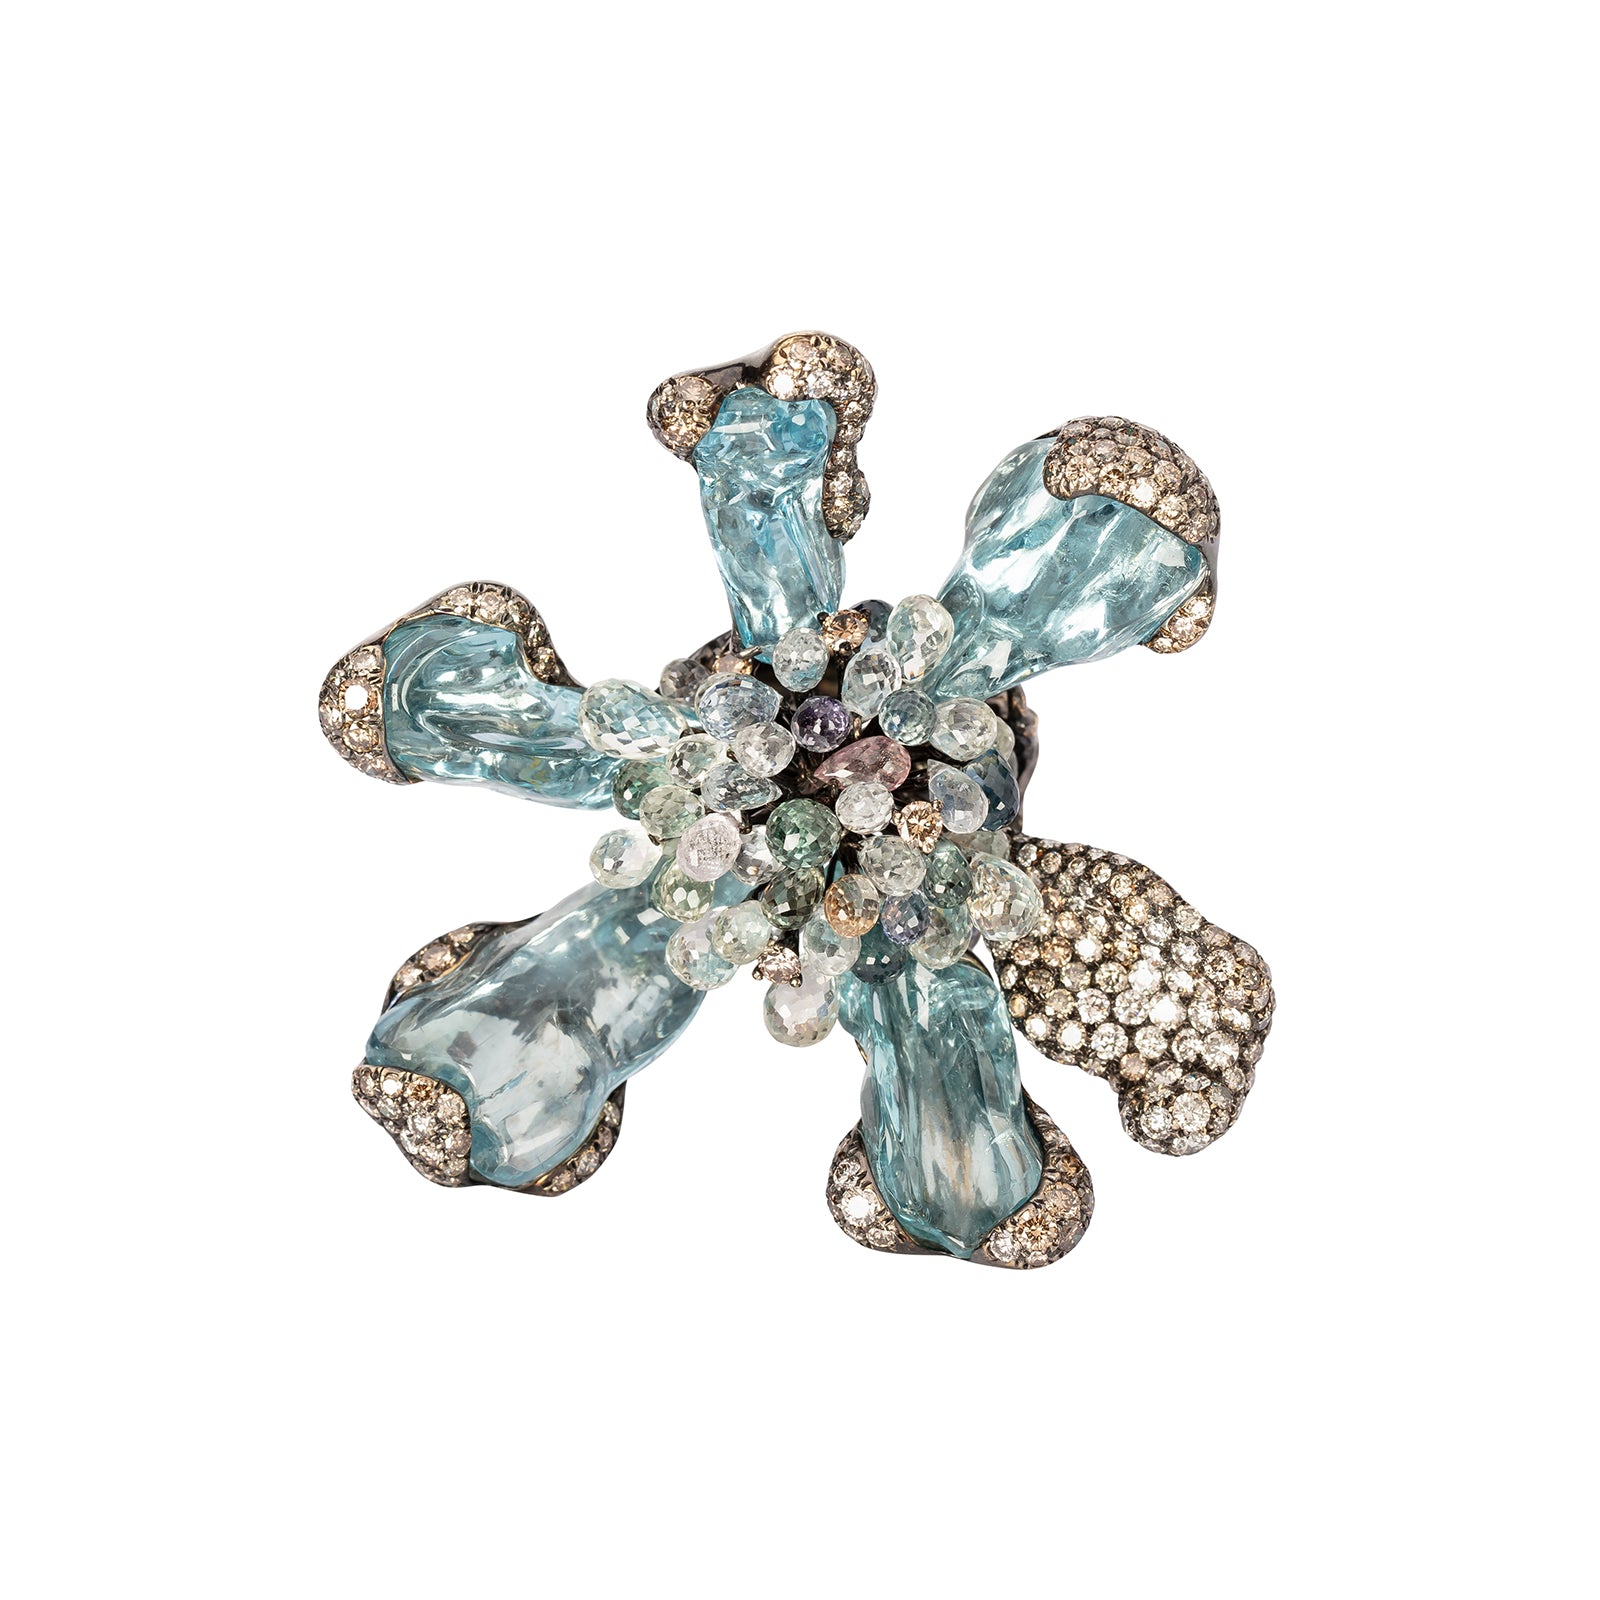 Arunashi Wild Orchid Ring - Aquamarine - Rings - Broken English Jewelry